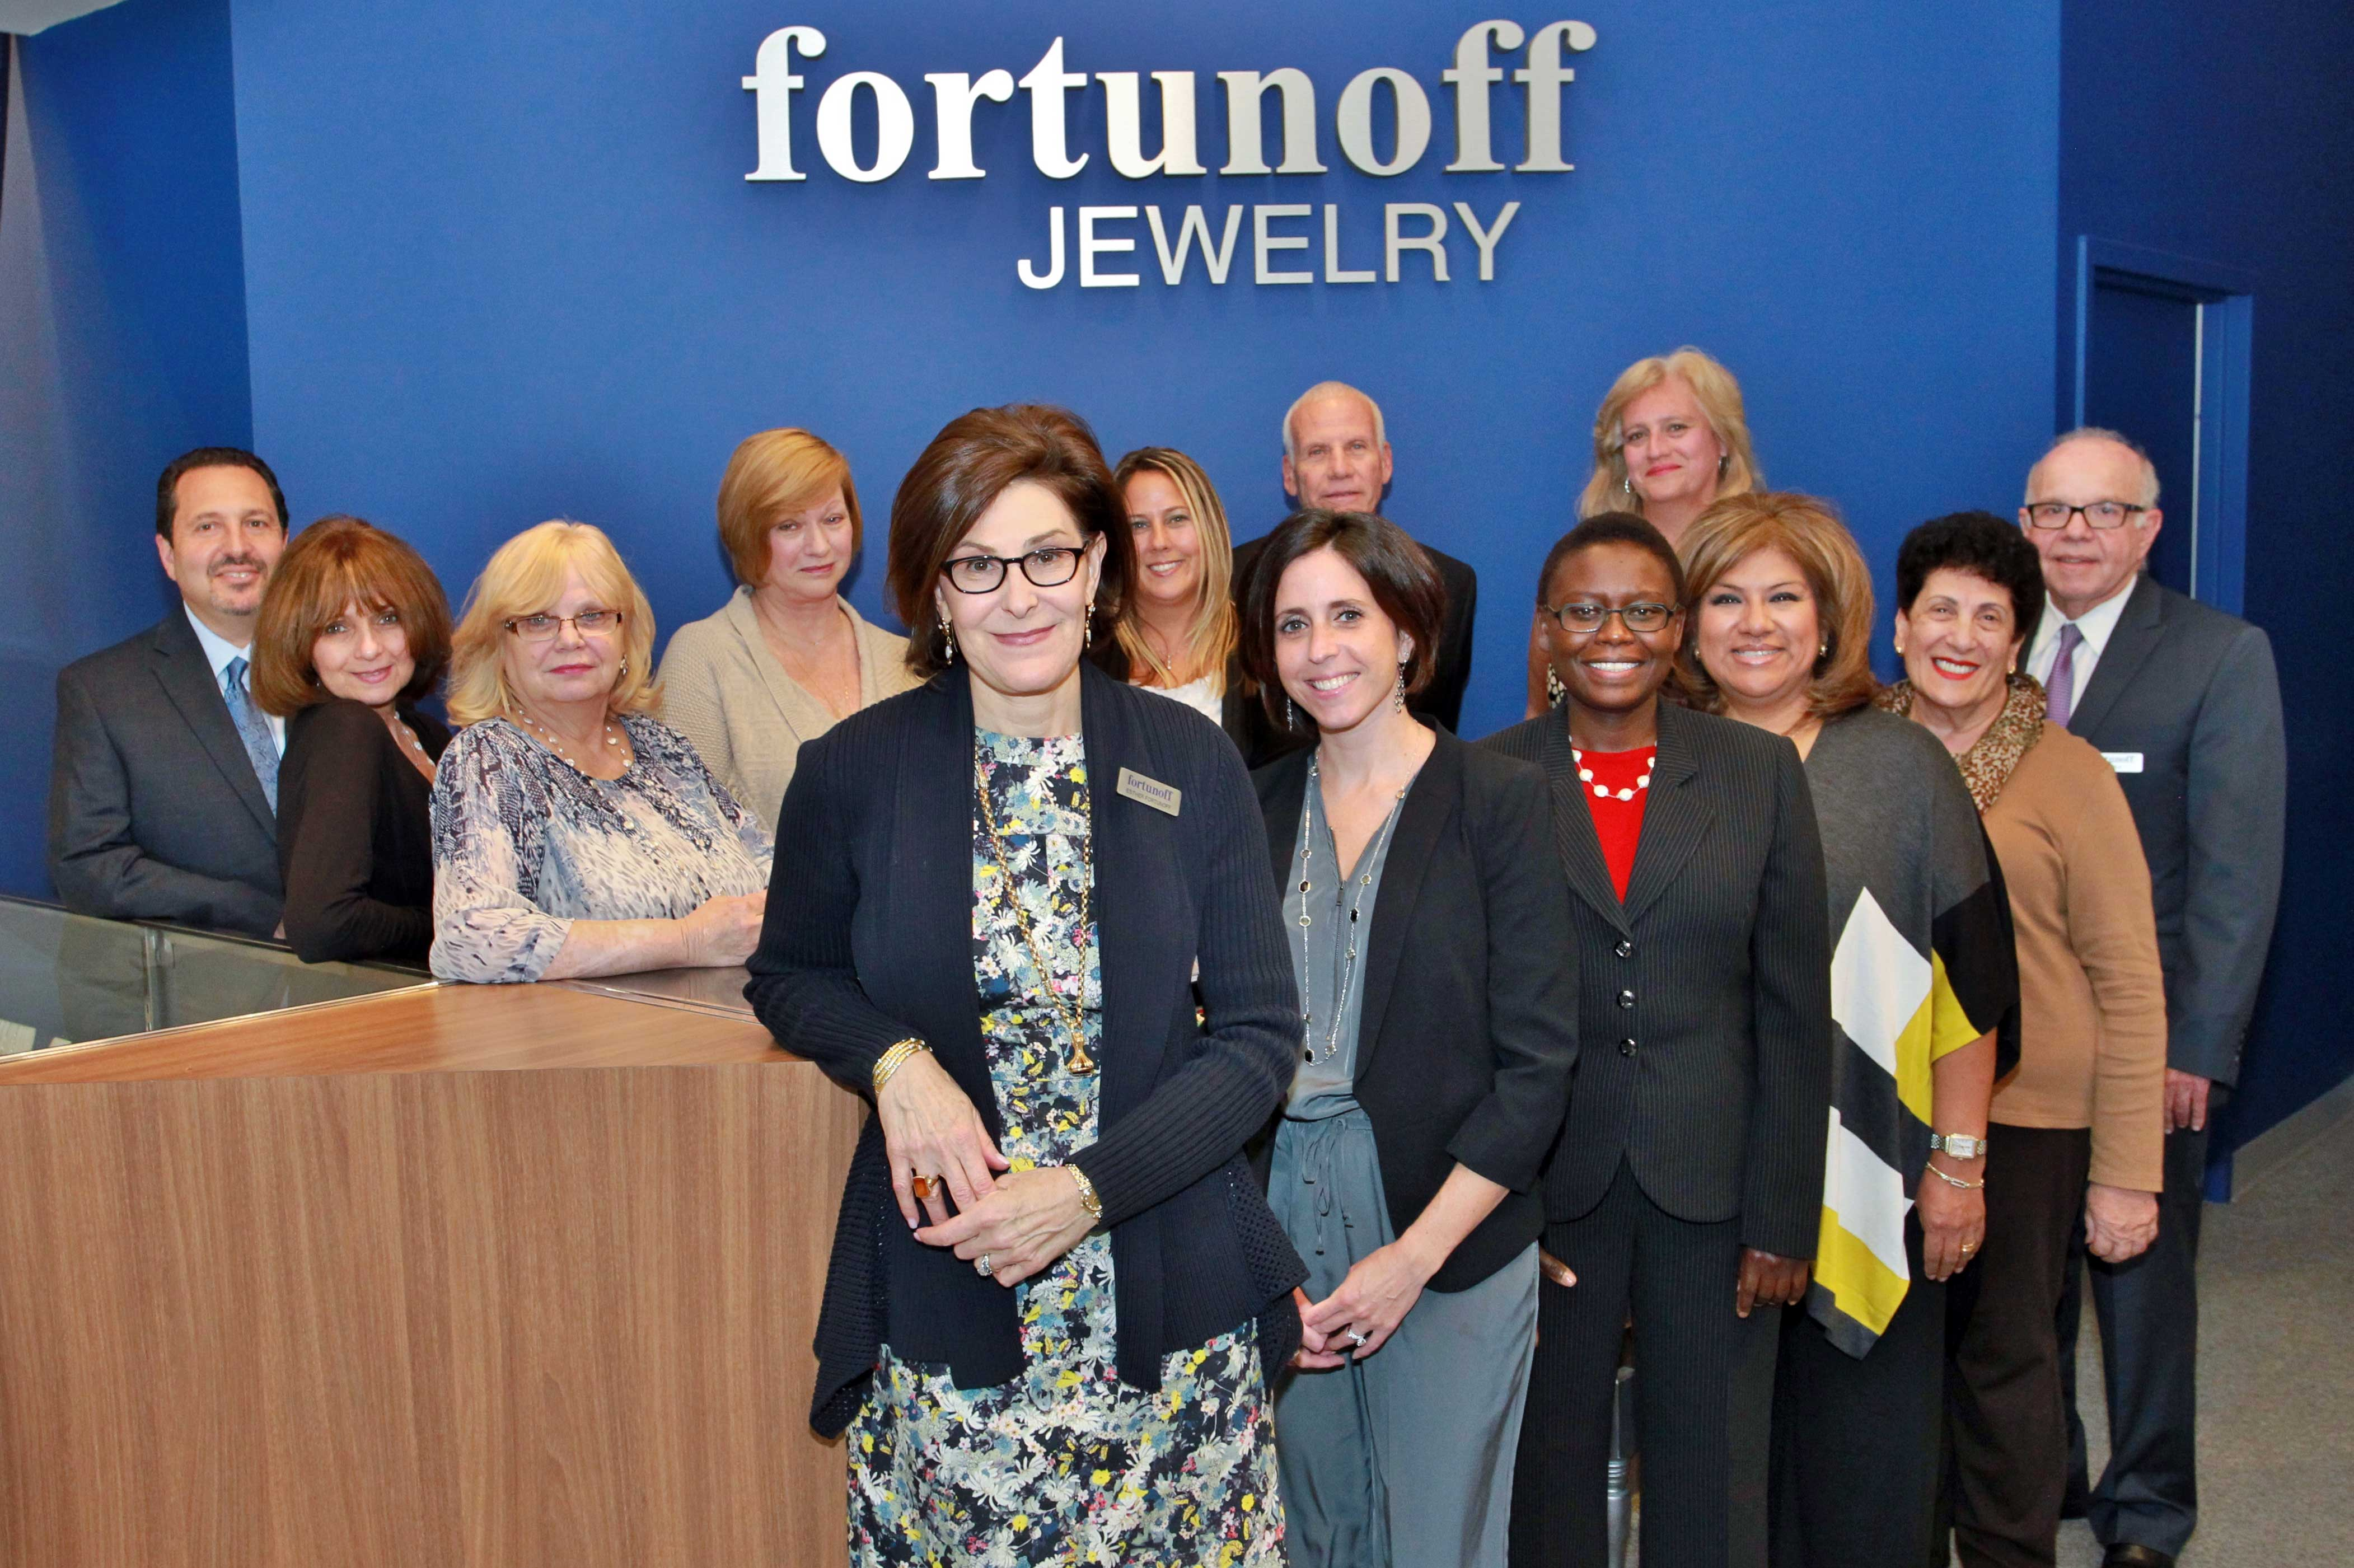 Fortunoff Jewerly Store team